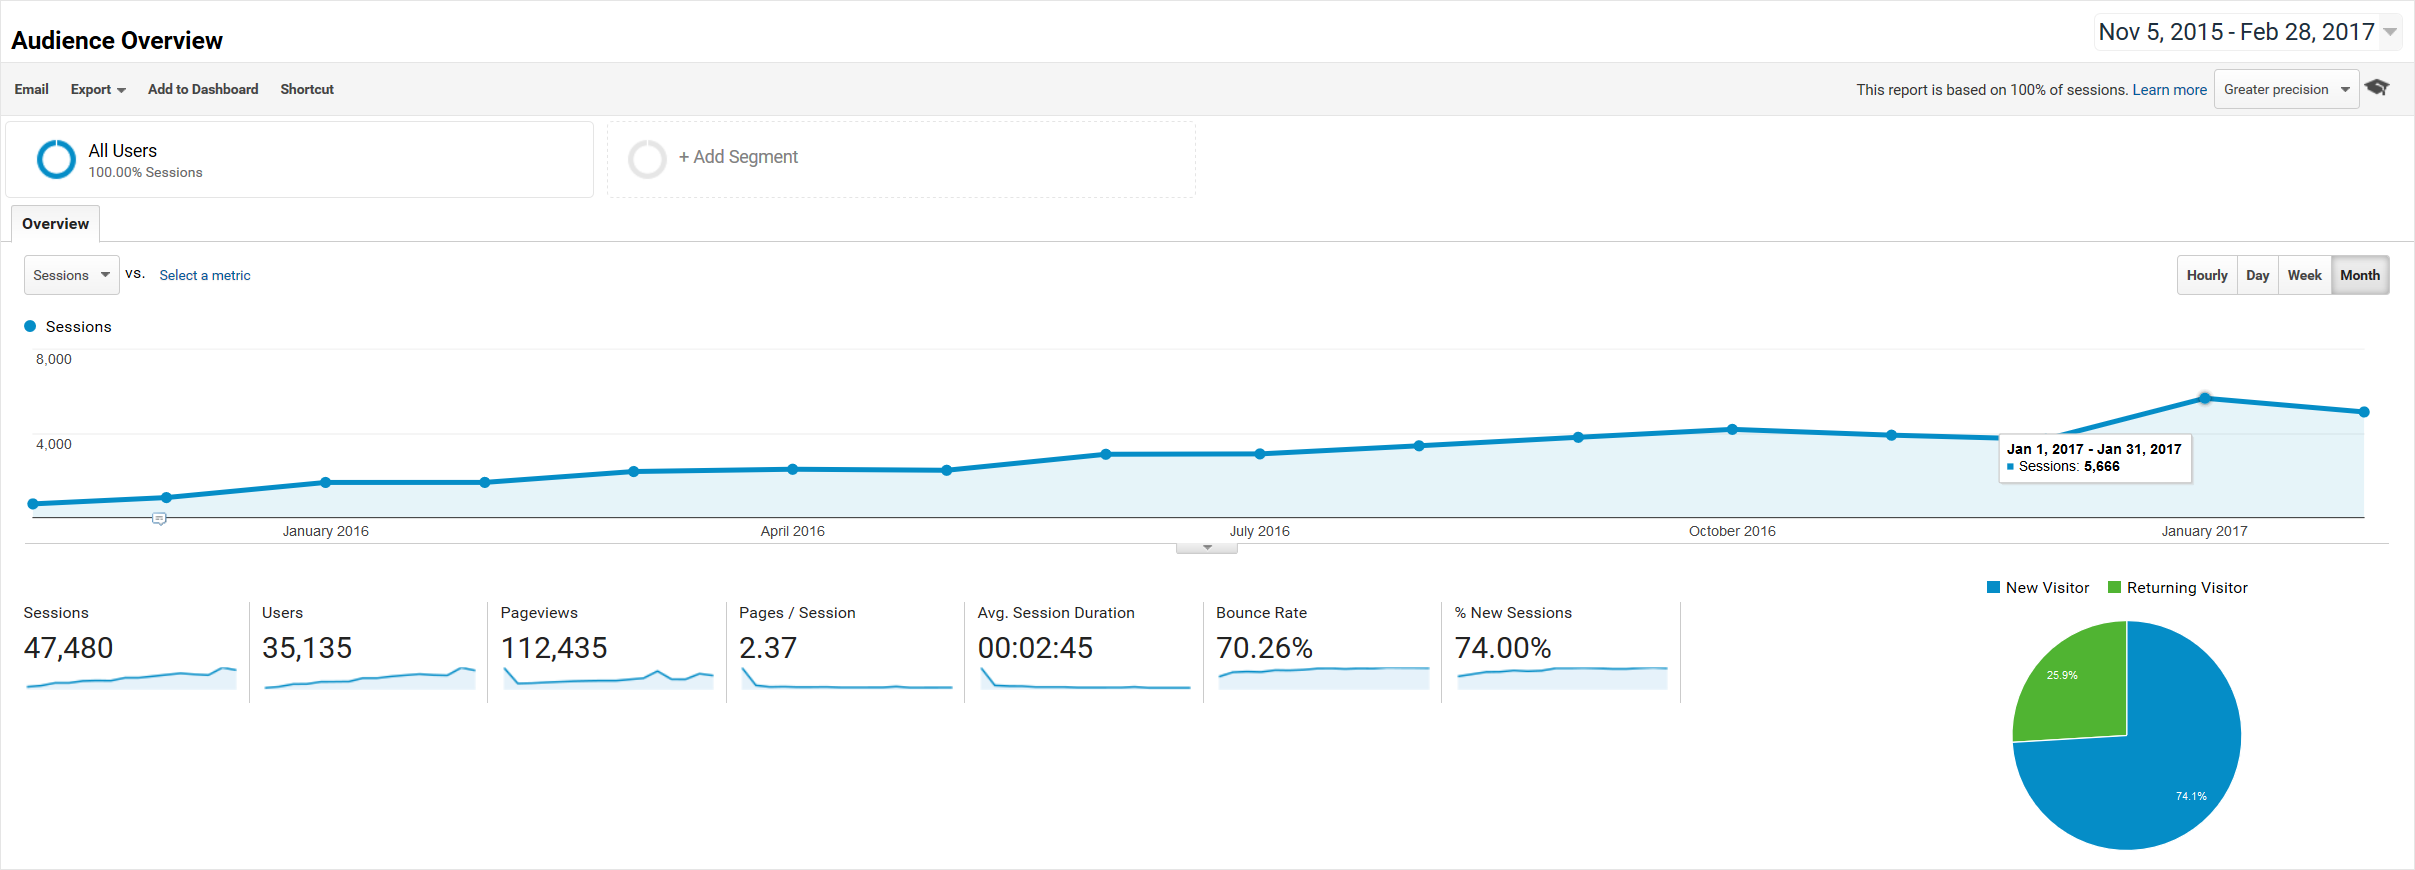 Google Analytics - Audience Overview - 2015-11-05 thru 2017-02-28